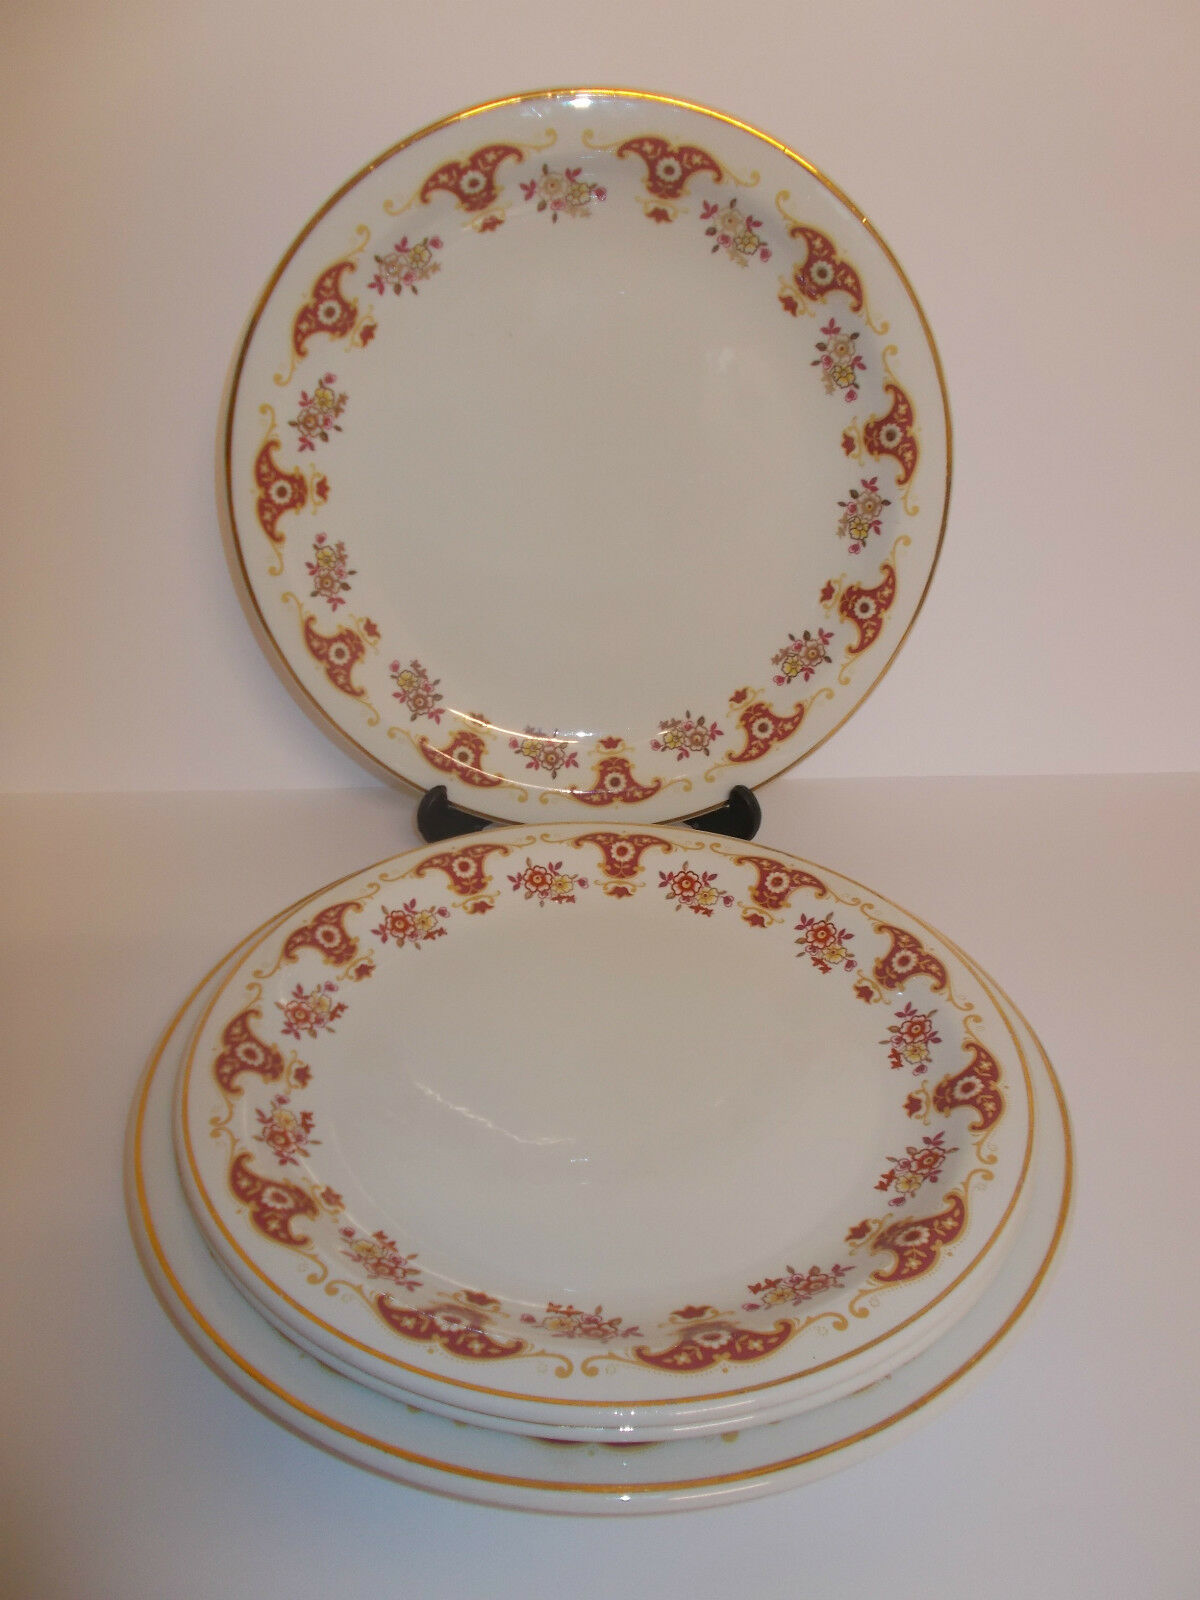 2 x Lee u0026 Street Manchester Super Vitfified Dinner Plates and 2 x Salad - Lovely & Tableware Serving u0026 Linen  Cookware Dining u0026 Bar  Home ...